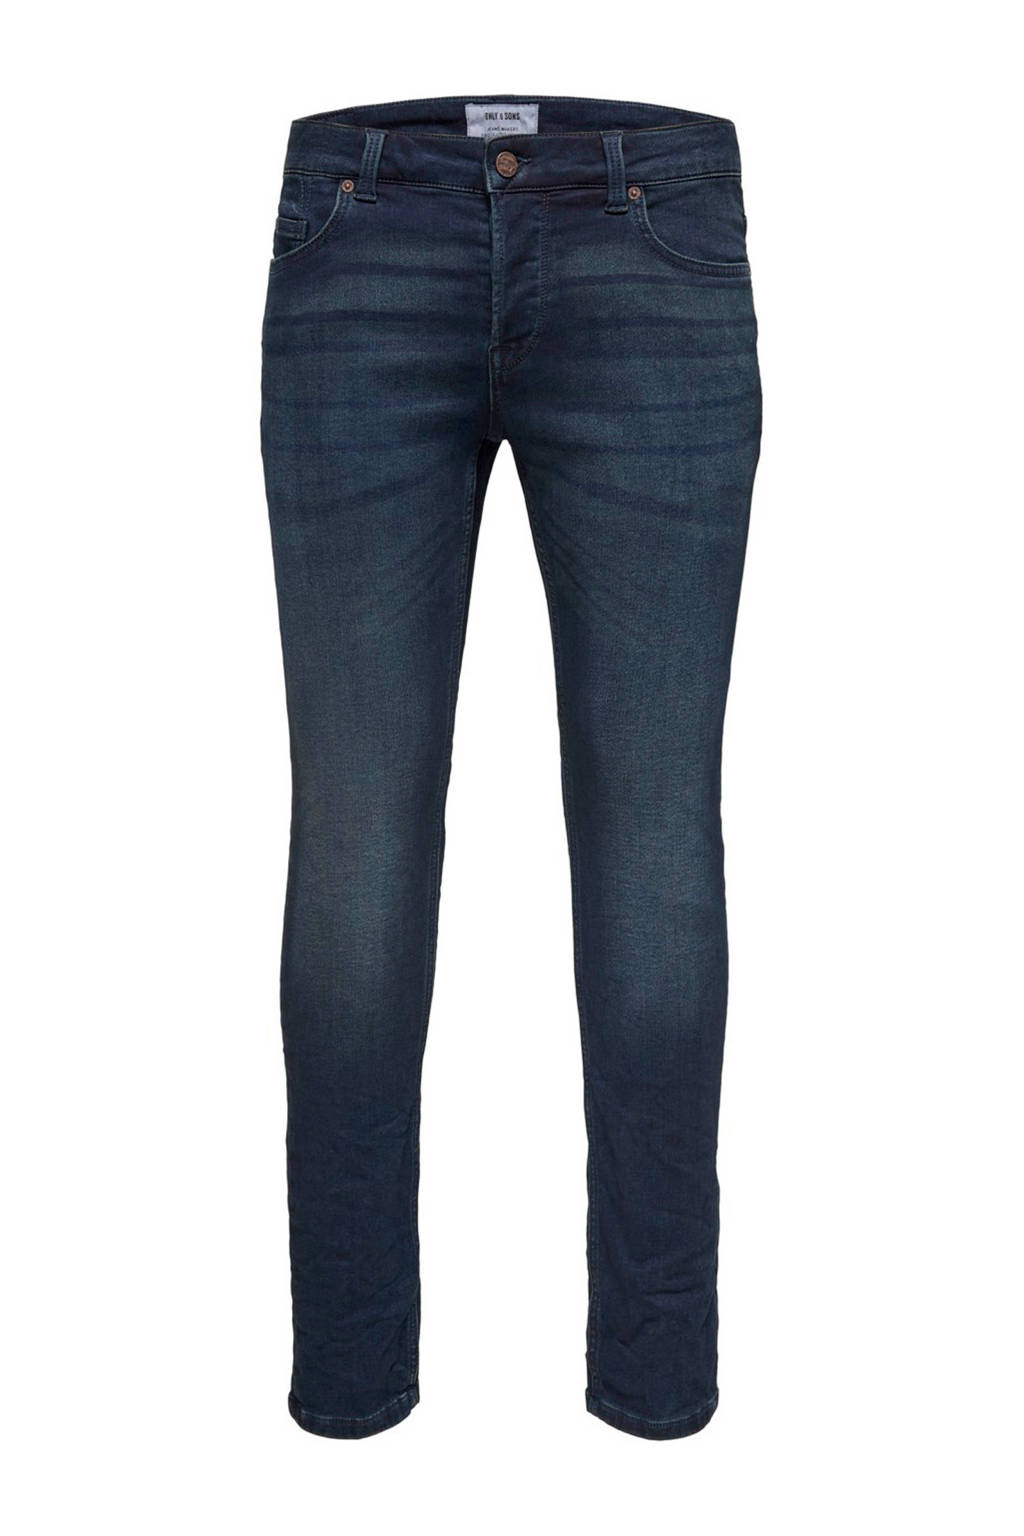 ONLY & SONS slim fit jeans Loom blue denim, Blue denim